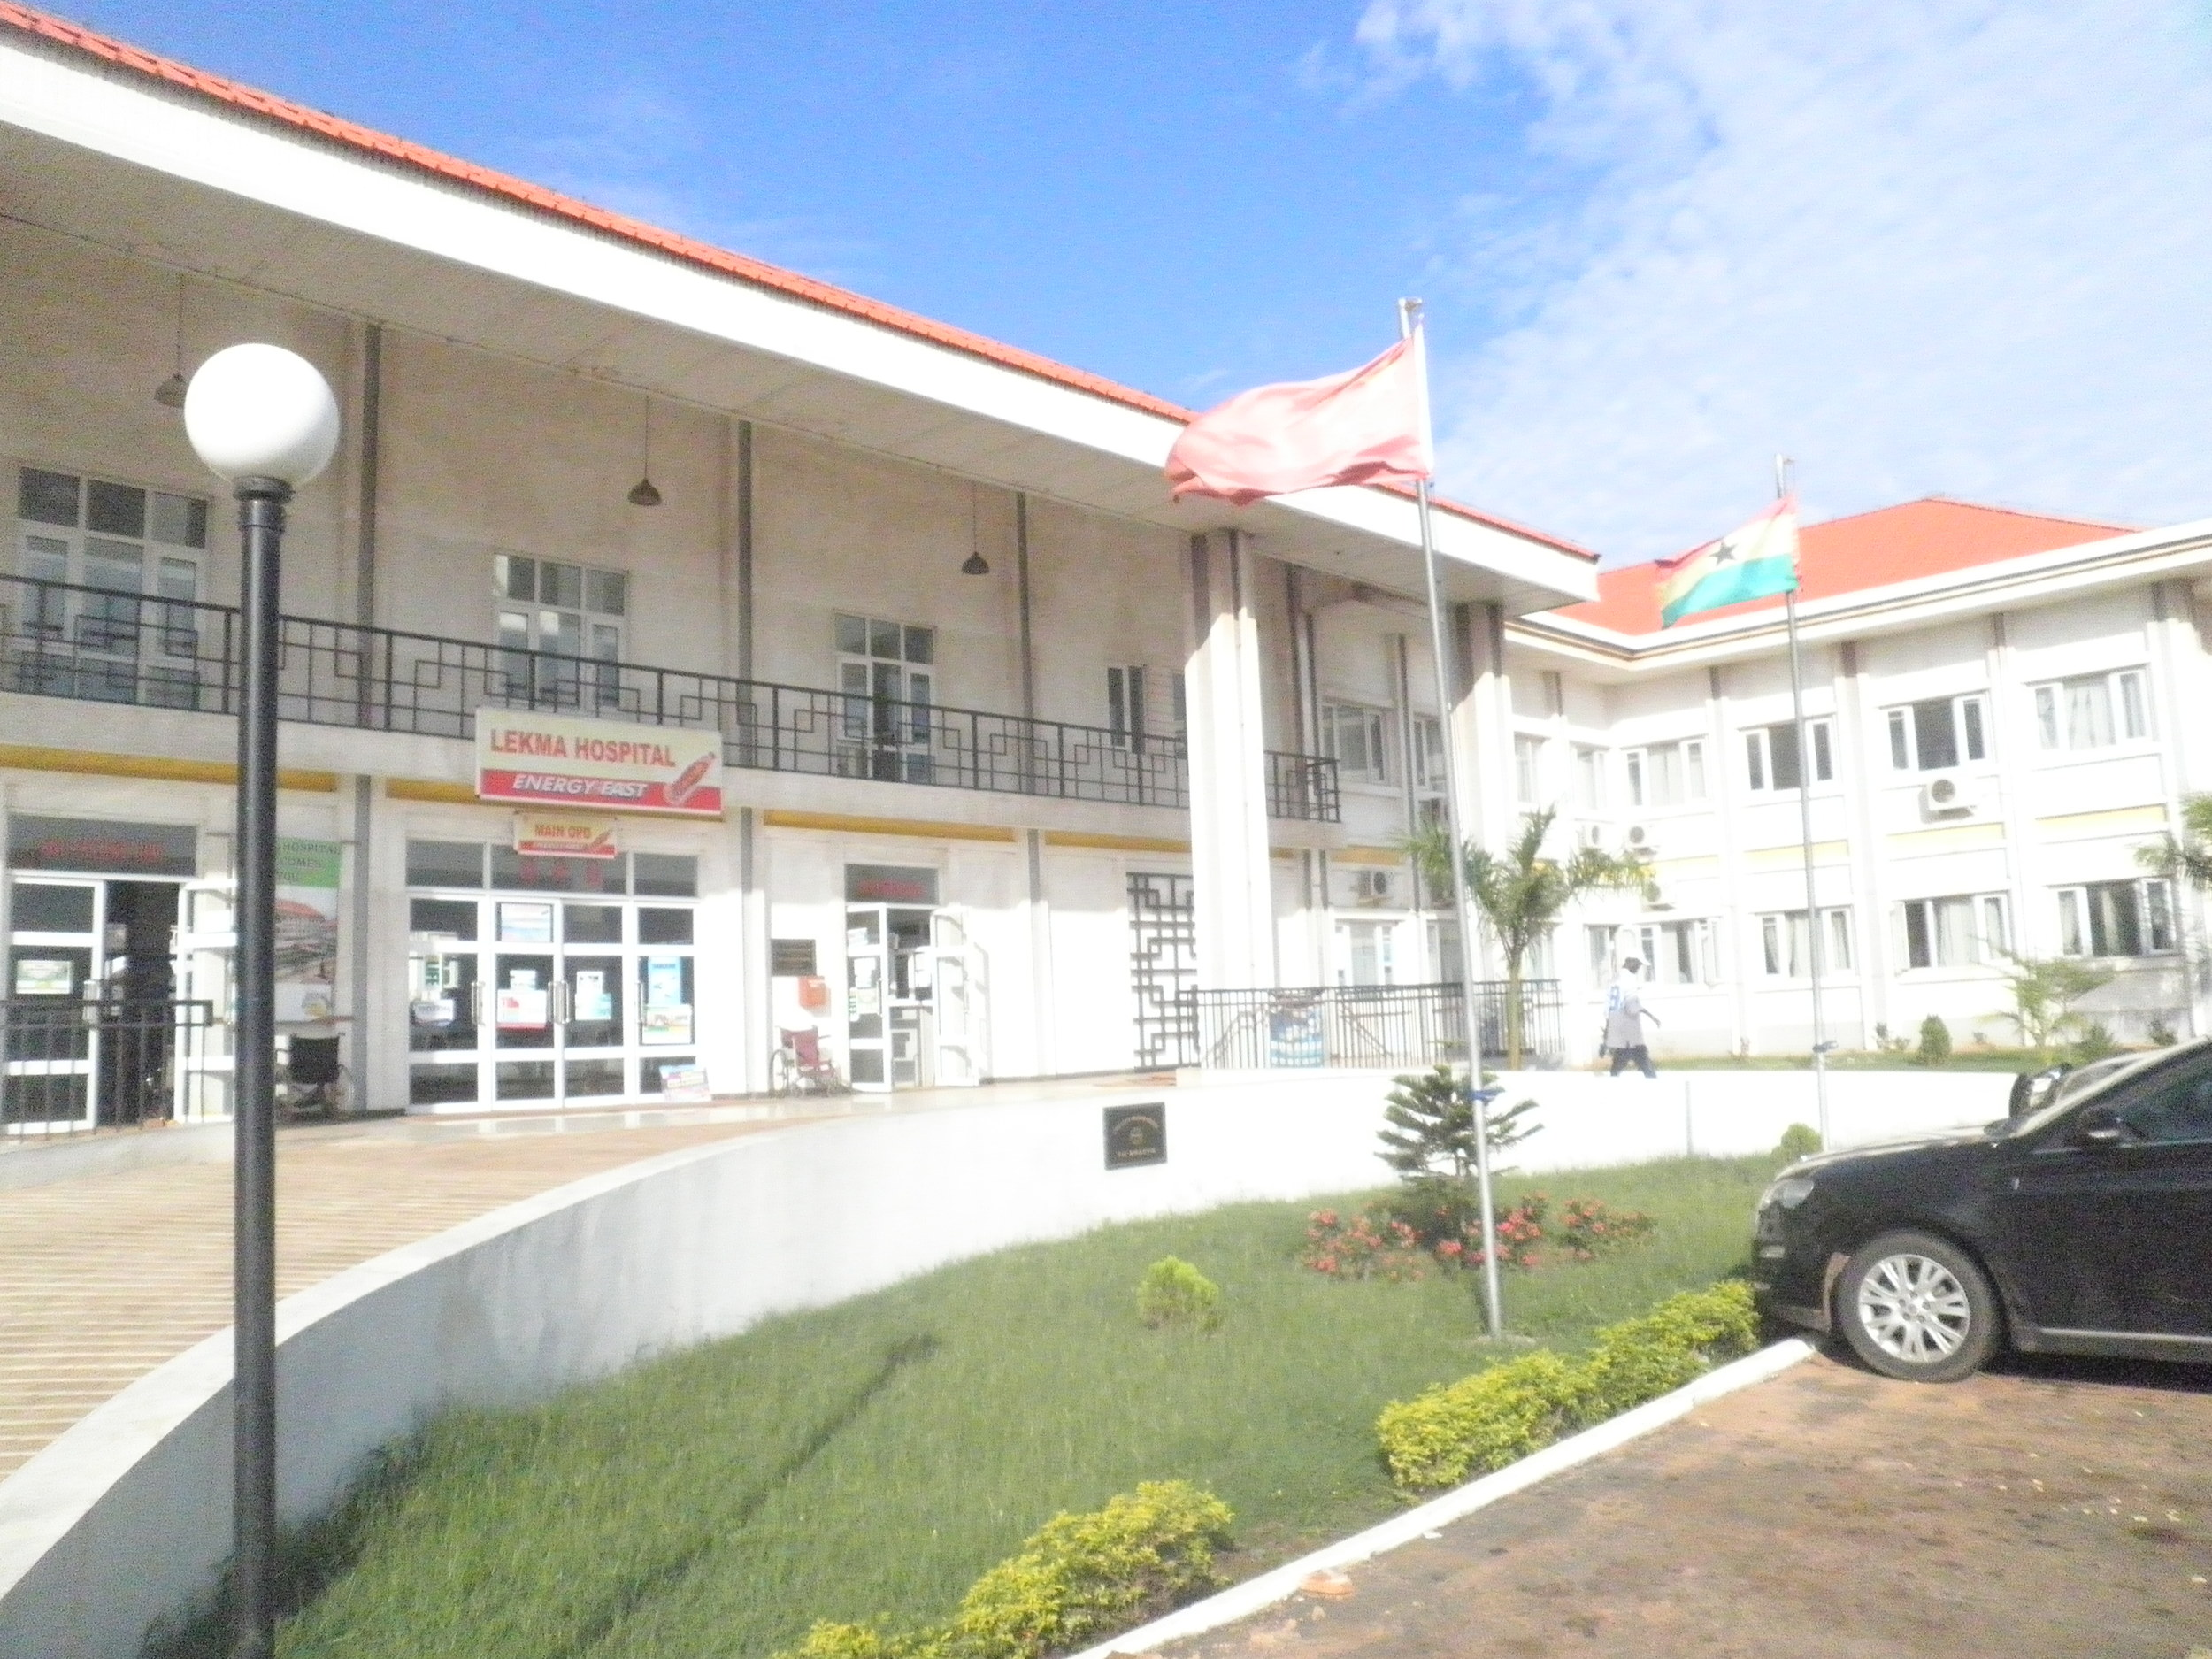 Lekma Hospital, a government-supported district hospital, performs many basic services. It also receives supplemented funds from the Chinese government (see flag) to manage one of the only CT scans in the country.